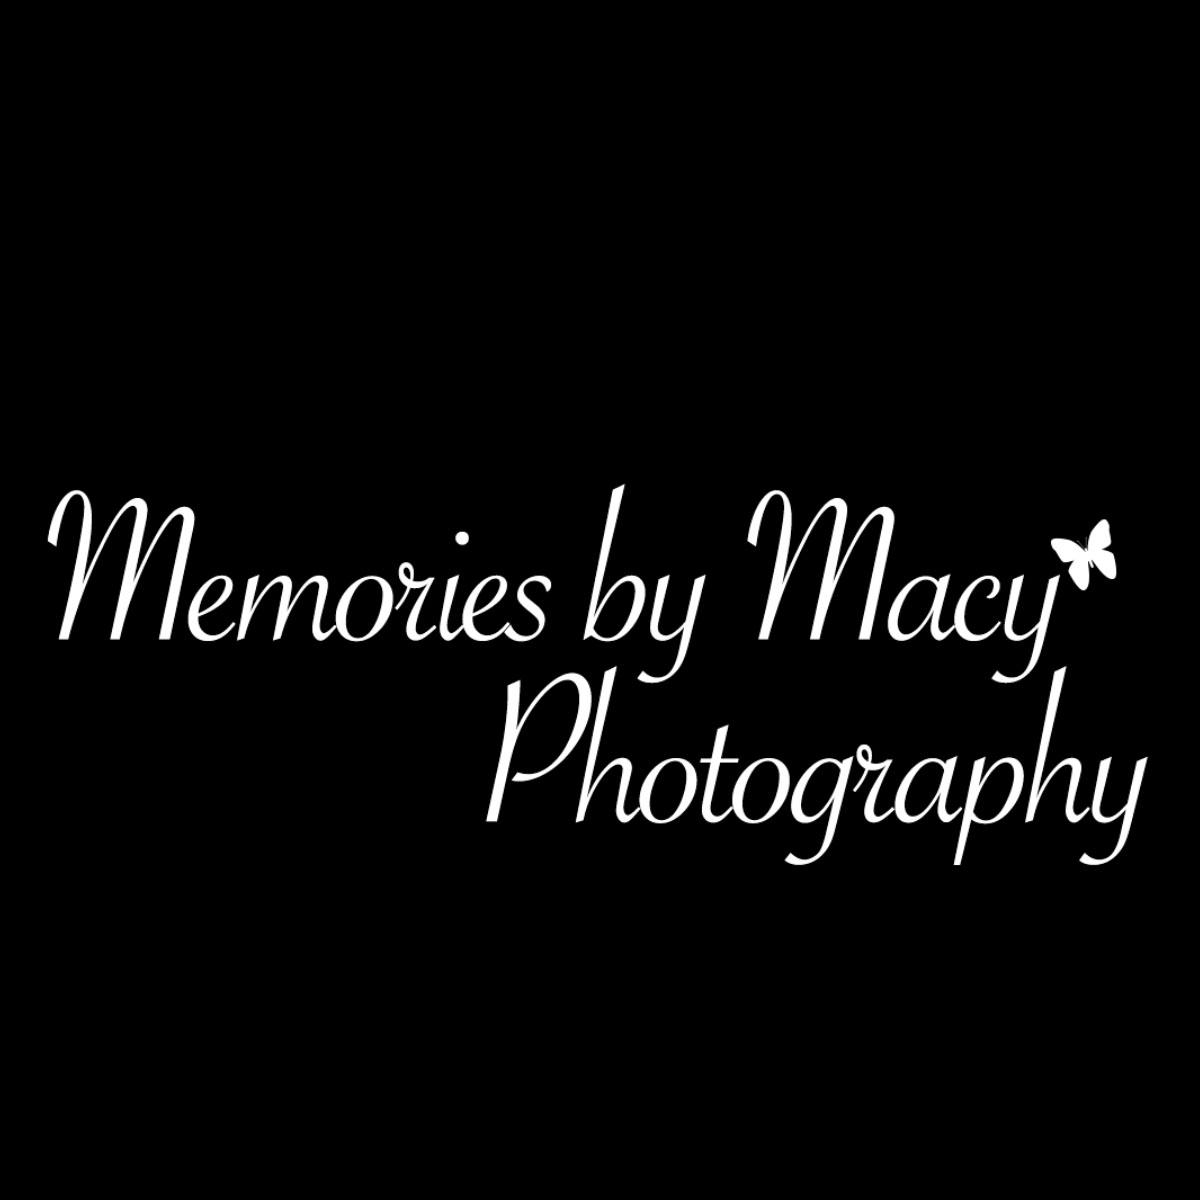 Memories by Macy Photography Logo